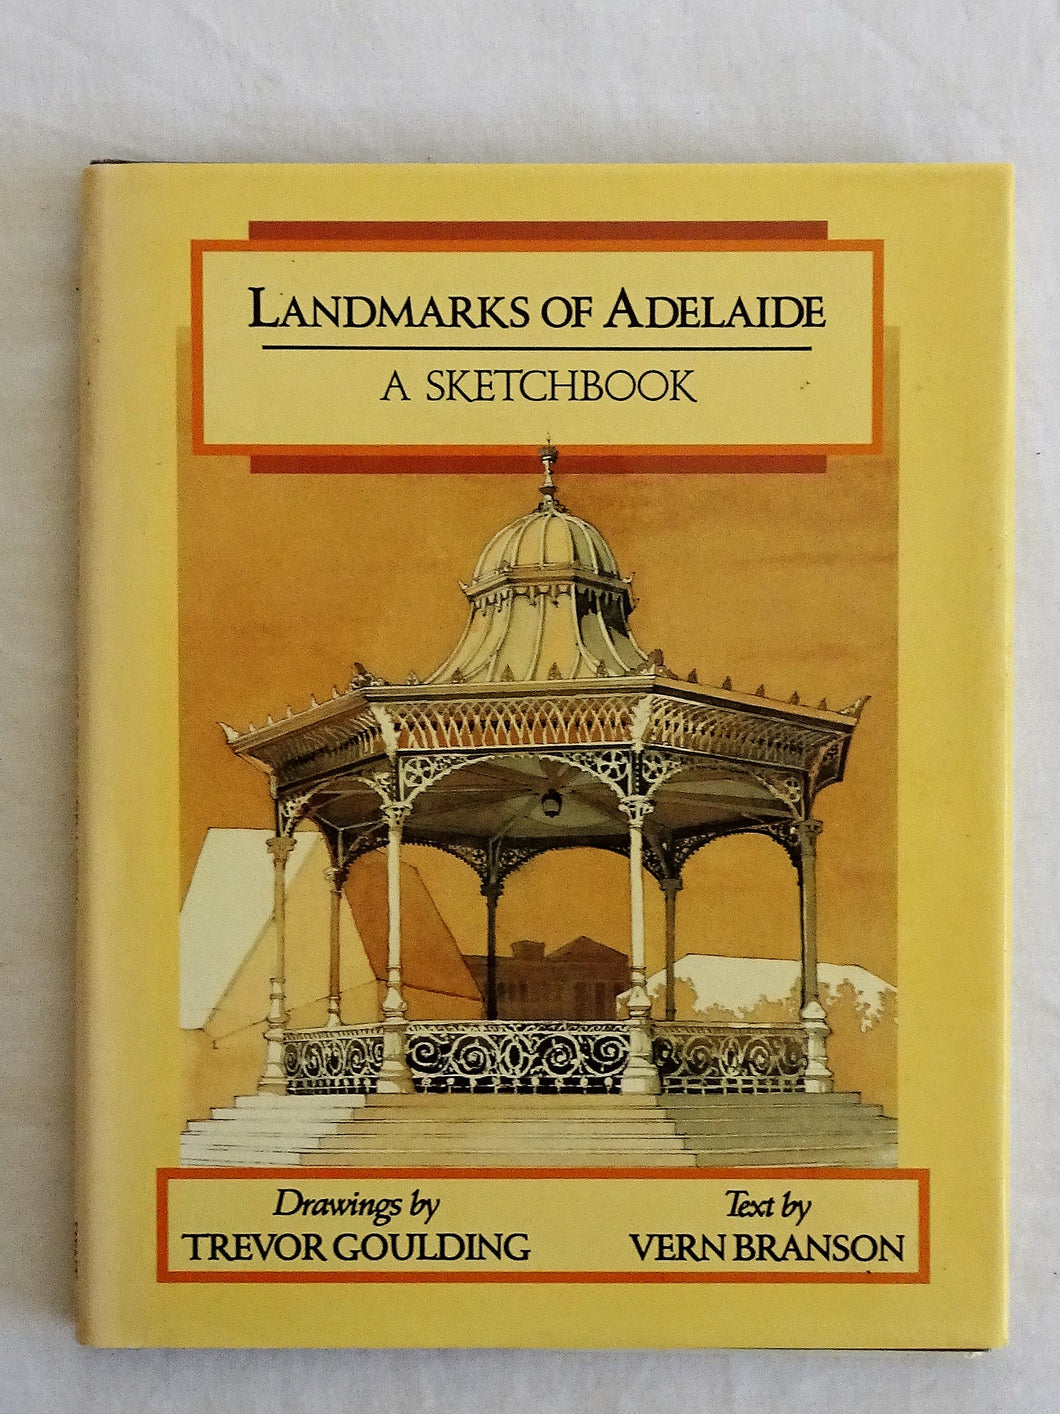 Landmarks of Adelaide by Trevor Goulding and Vern Branson